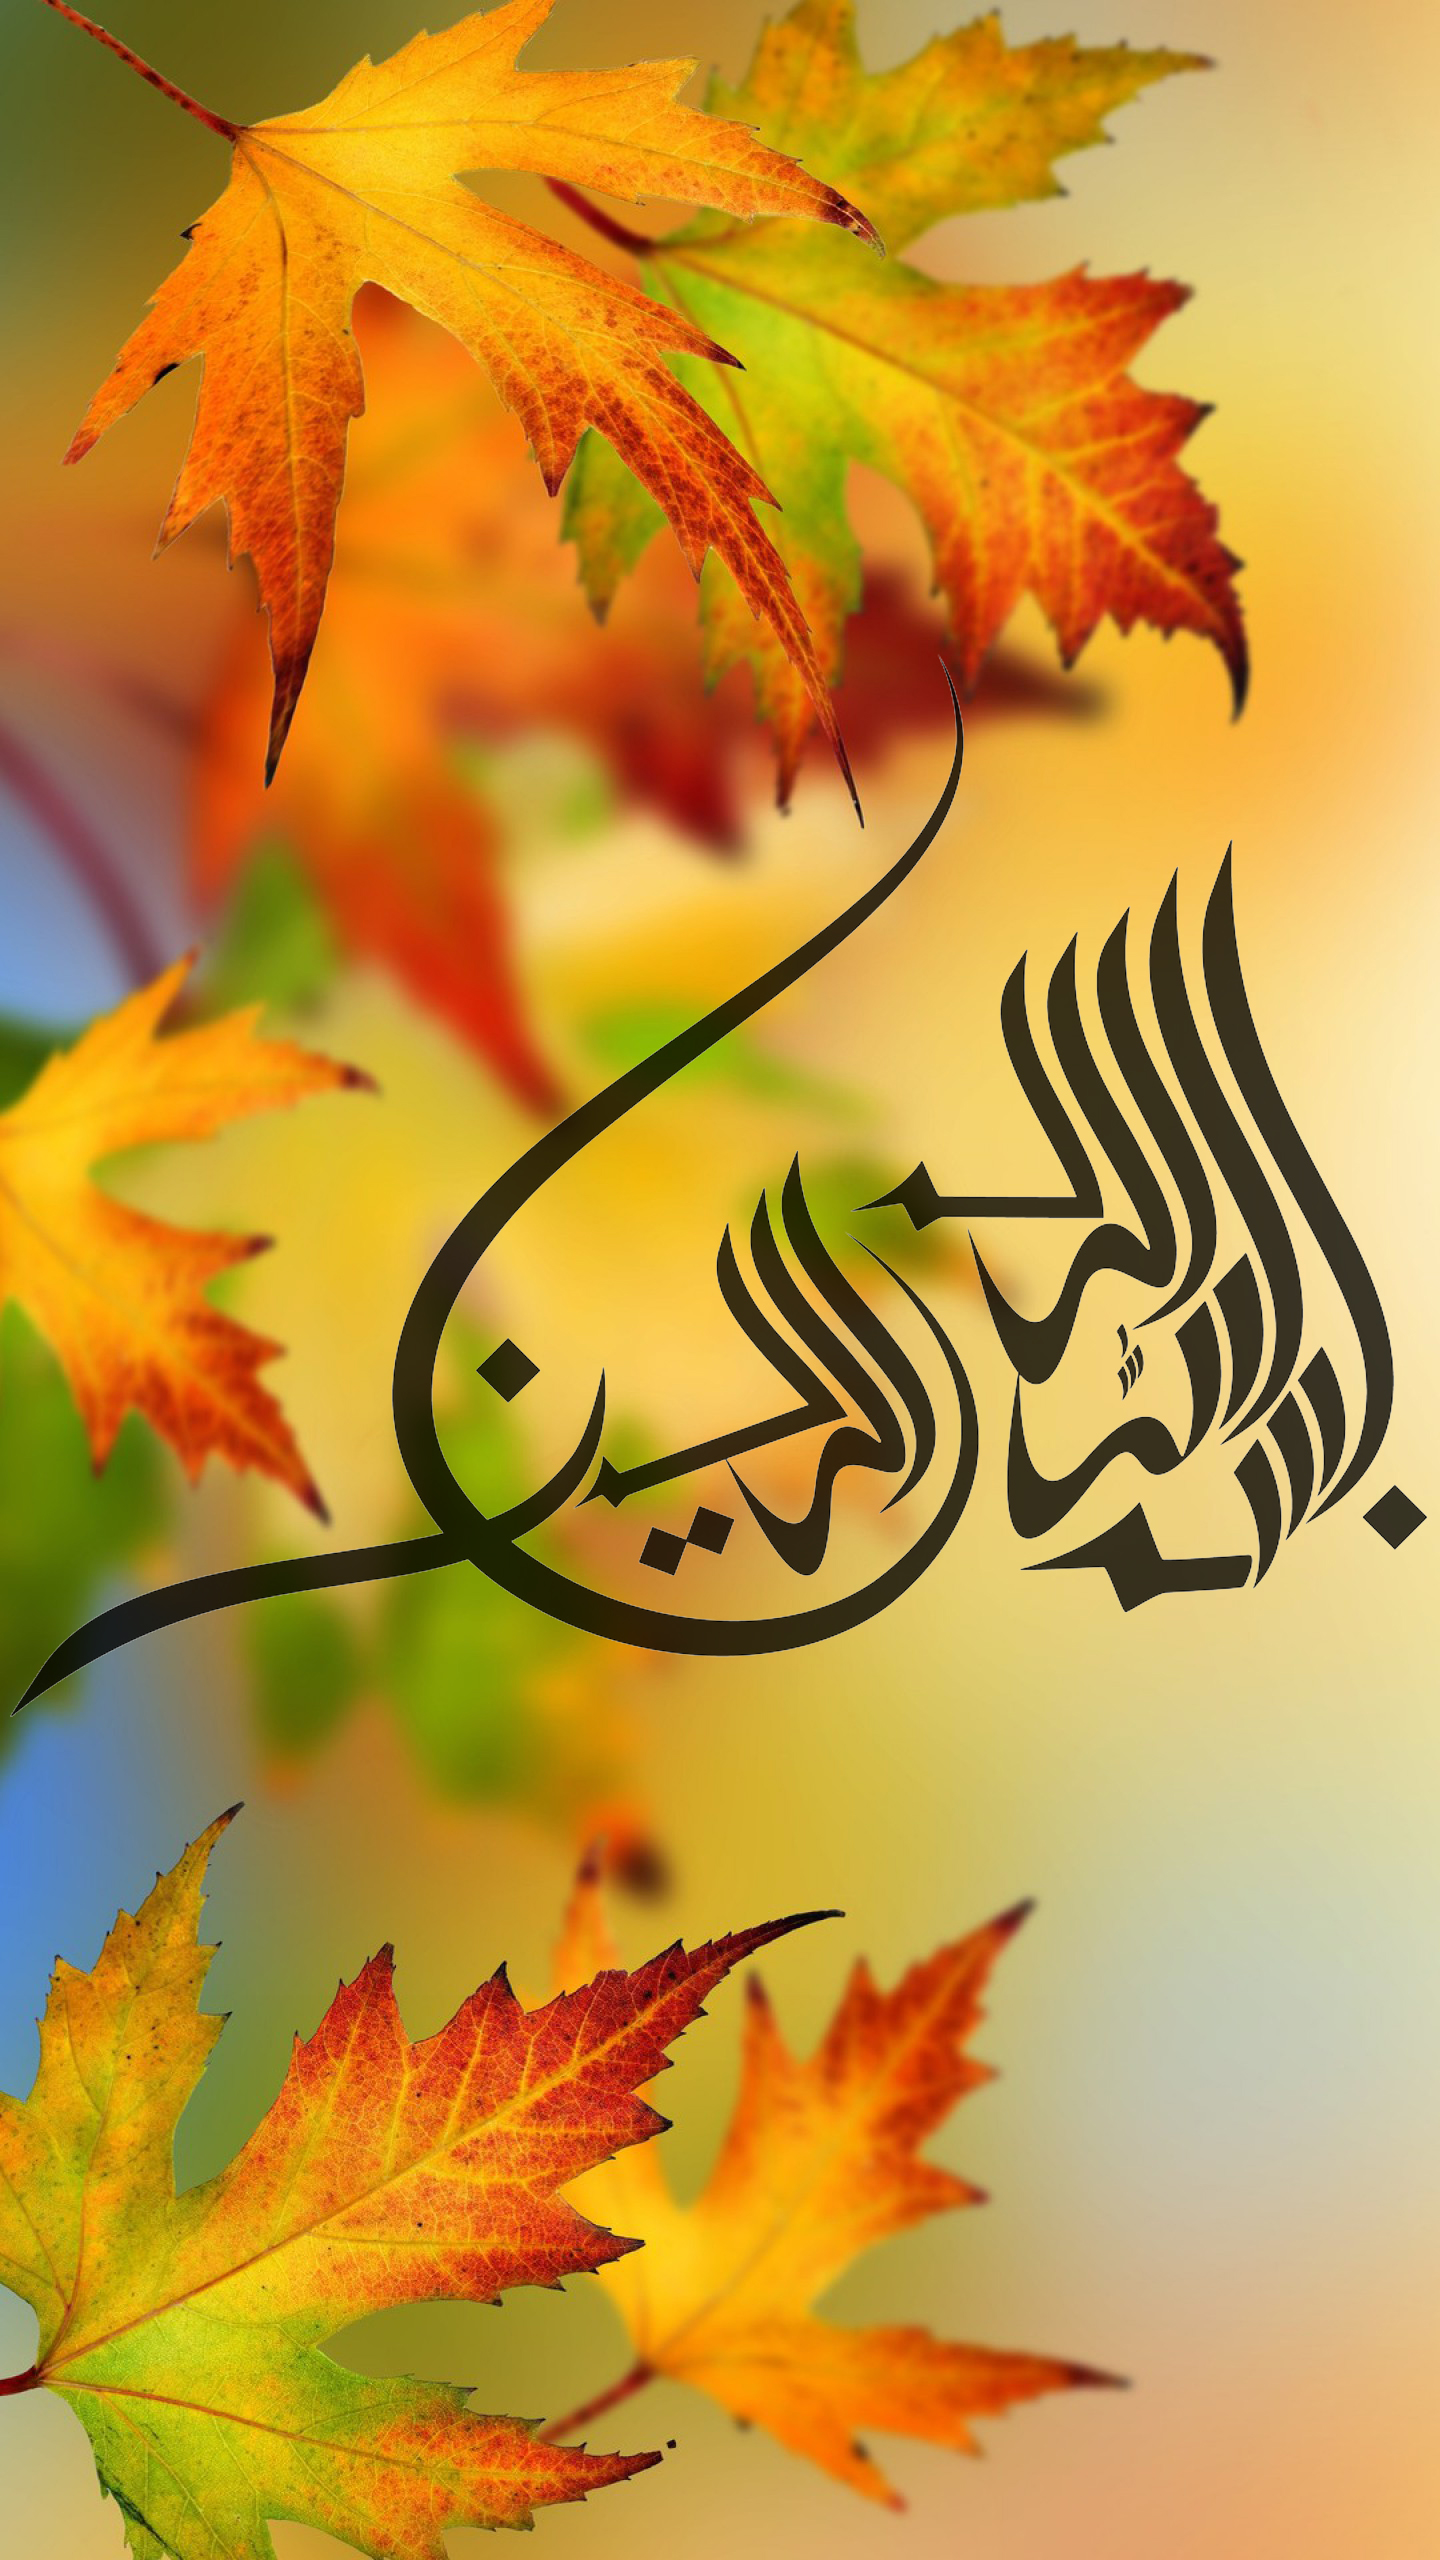 Best Islamic Wallpaper For 5 Inch Mobile Phone 2 Of 7 Bismillah In Autumn Background Hd